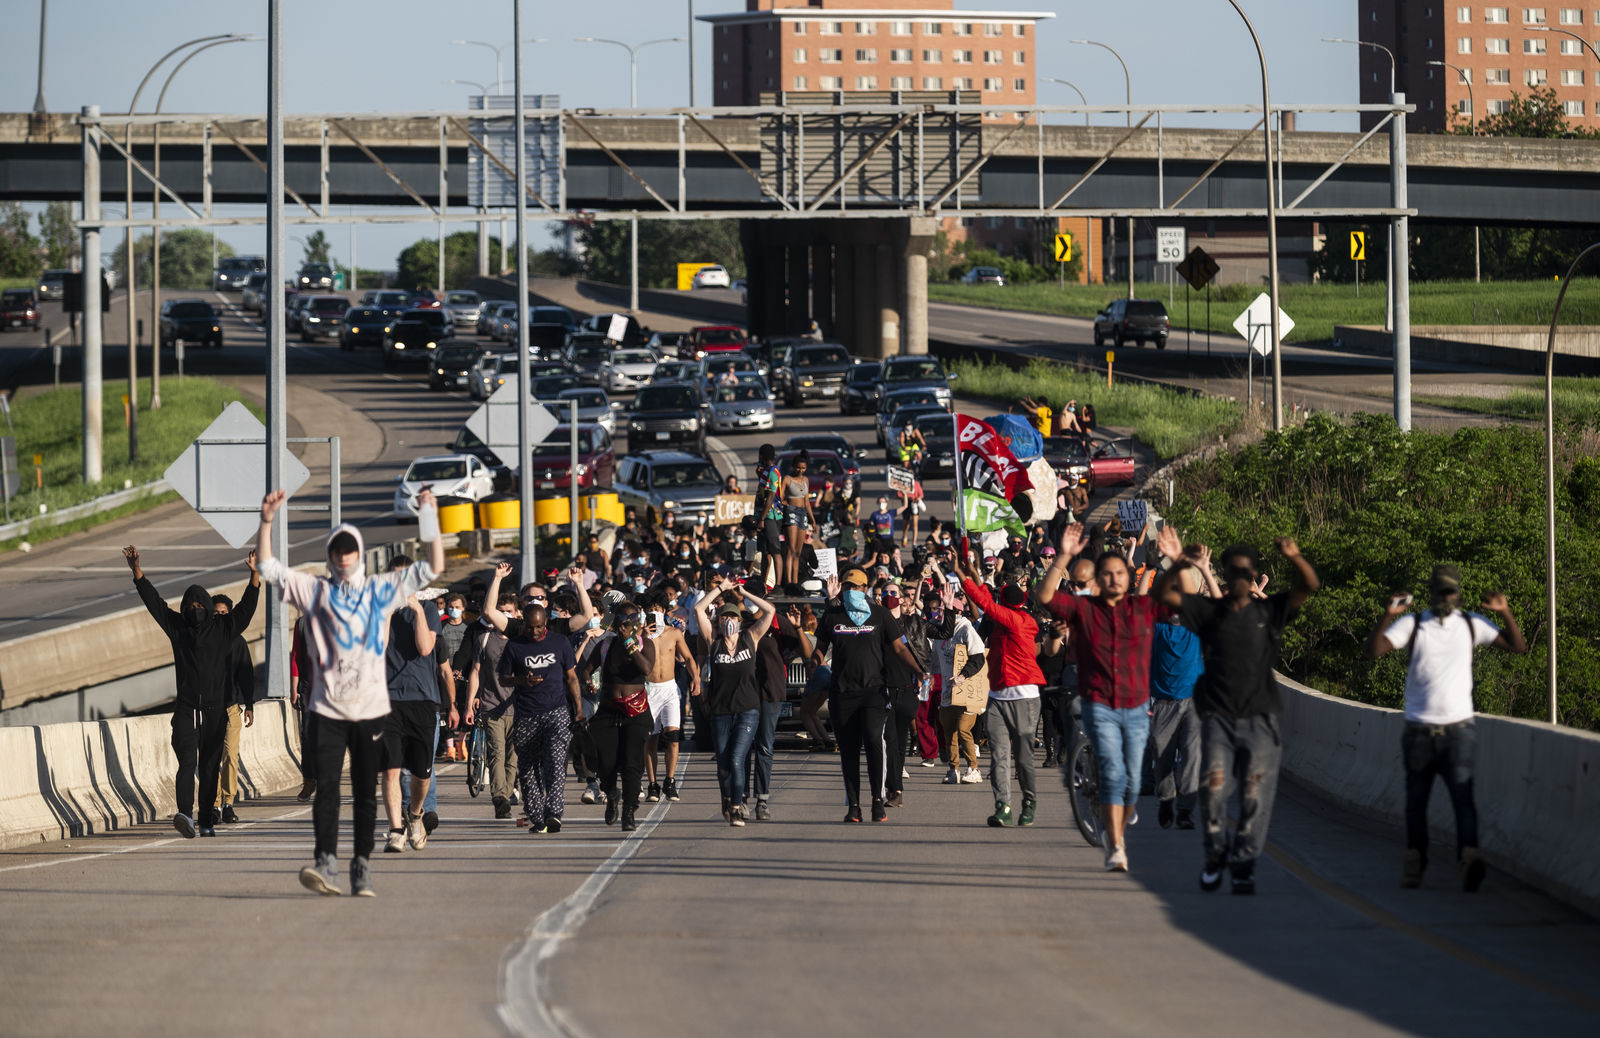 Protesters march down a highway off-ramp on May 28, 2020 on their way to Minneapolis, Minnesota. (Photo by Stephen Maturen/Getty Images)